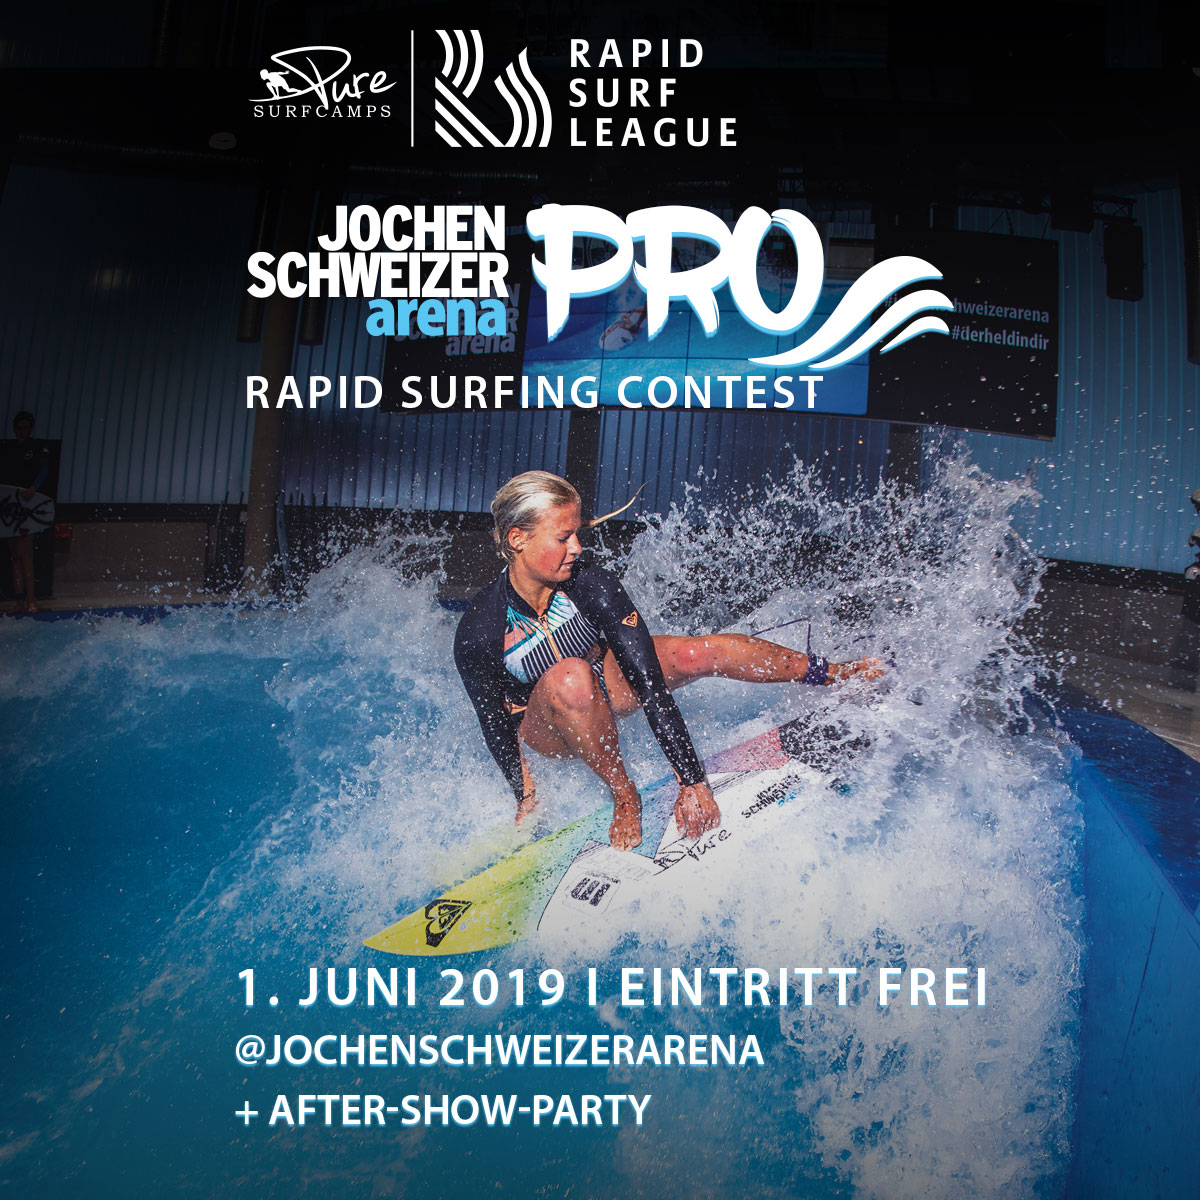 Jochen Schweizer Arena Pro - June 1st 2019Our opening event, just outside Munich, the birthplace of rapid surfing. This event will set the tone for 2019. Who will take out the first event of the 2019 season in front of the most critical crowd? If you can't make it, stay tuned for a BR live stream. INFO